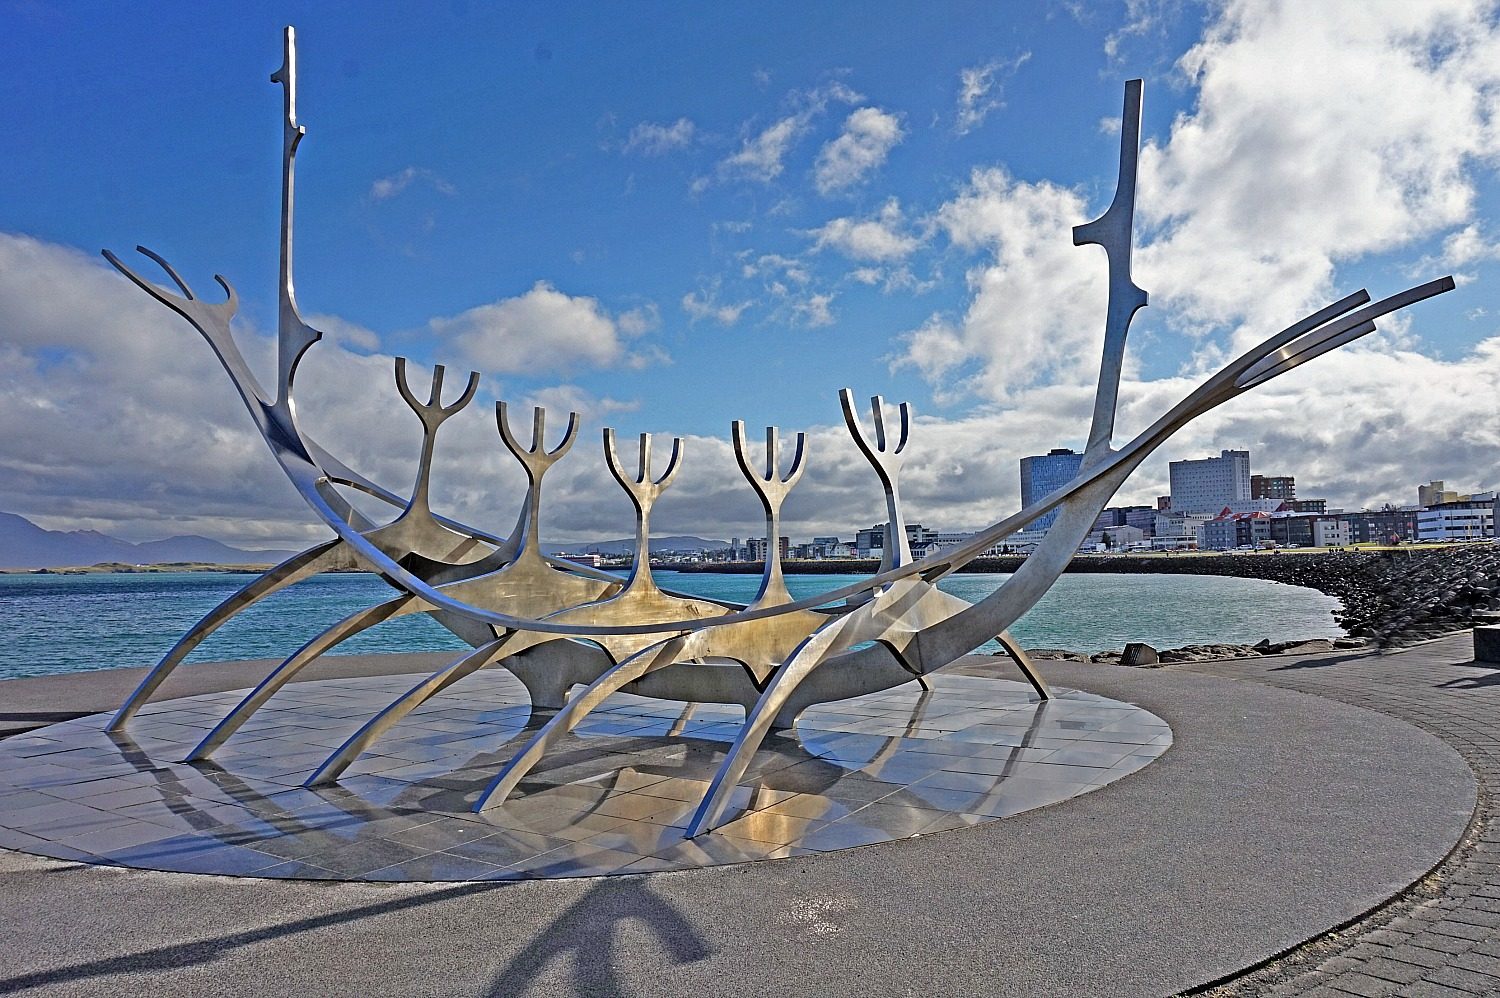 10 top reasons to visit Iceland. The Sun Voyager sculpture located in Reykjavik symbolizes a dreamboat – an ode to the sun, discovery, progress, and freedom.